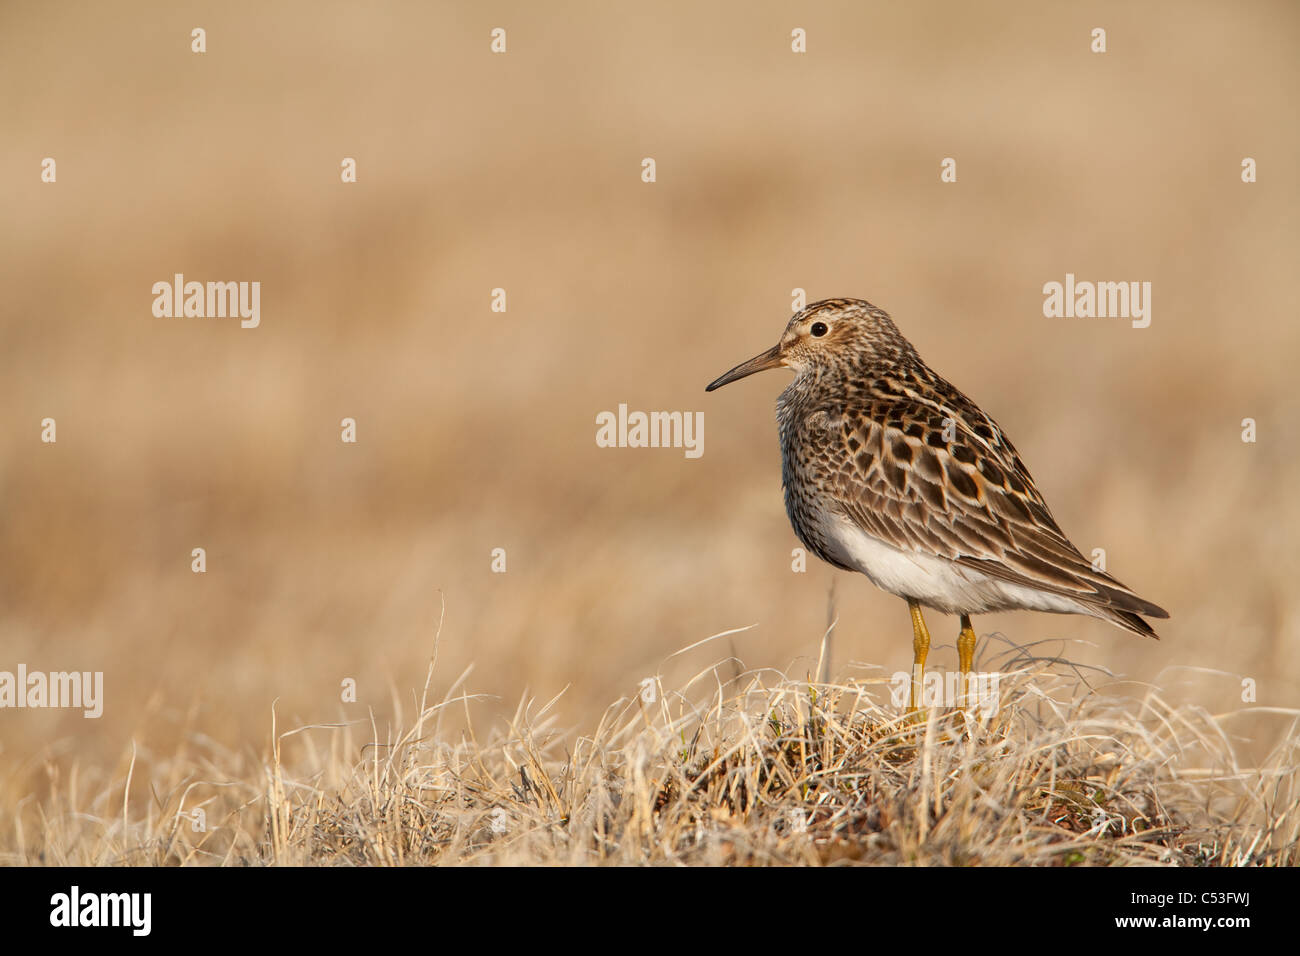 Pectoral Sandpiper standing on tundra breeding ground, Arctic Coastal Plain, NPR, Alaska - Stock Image